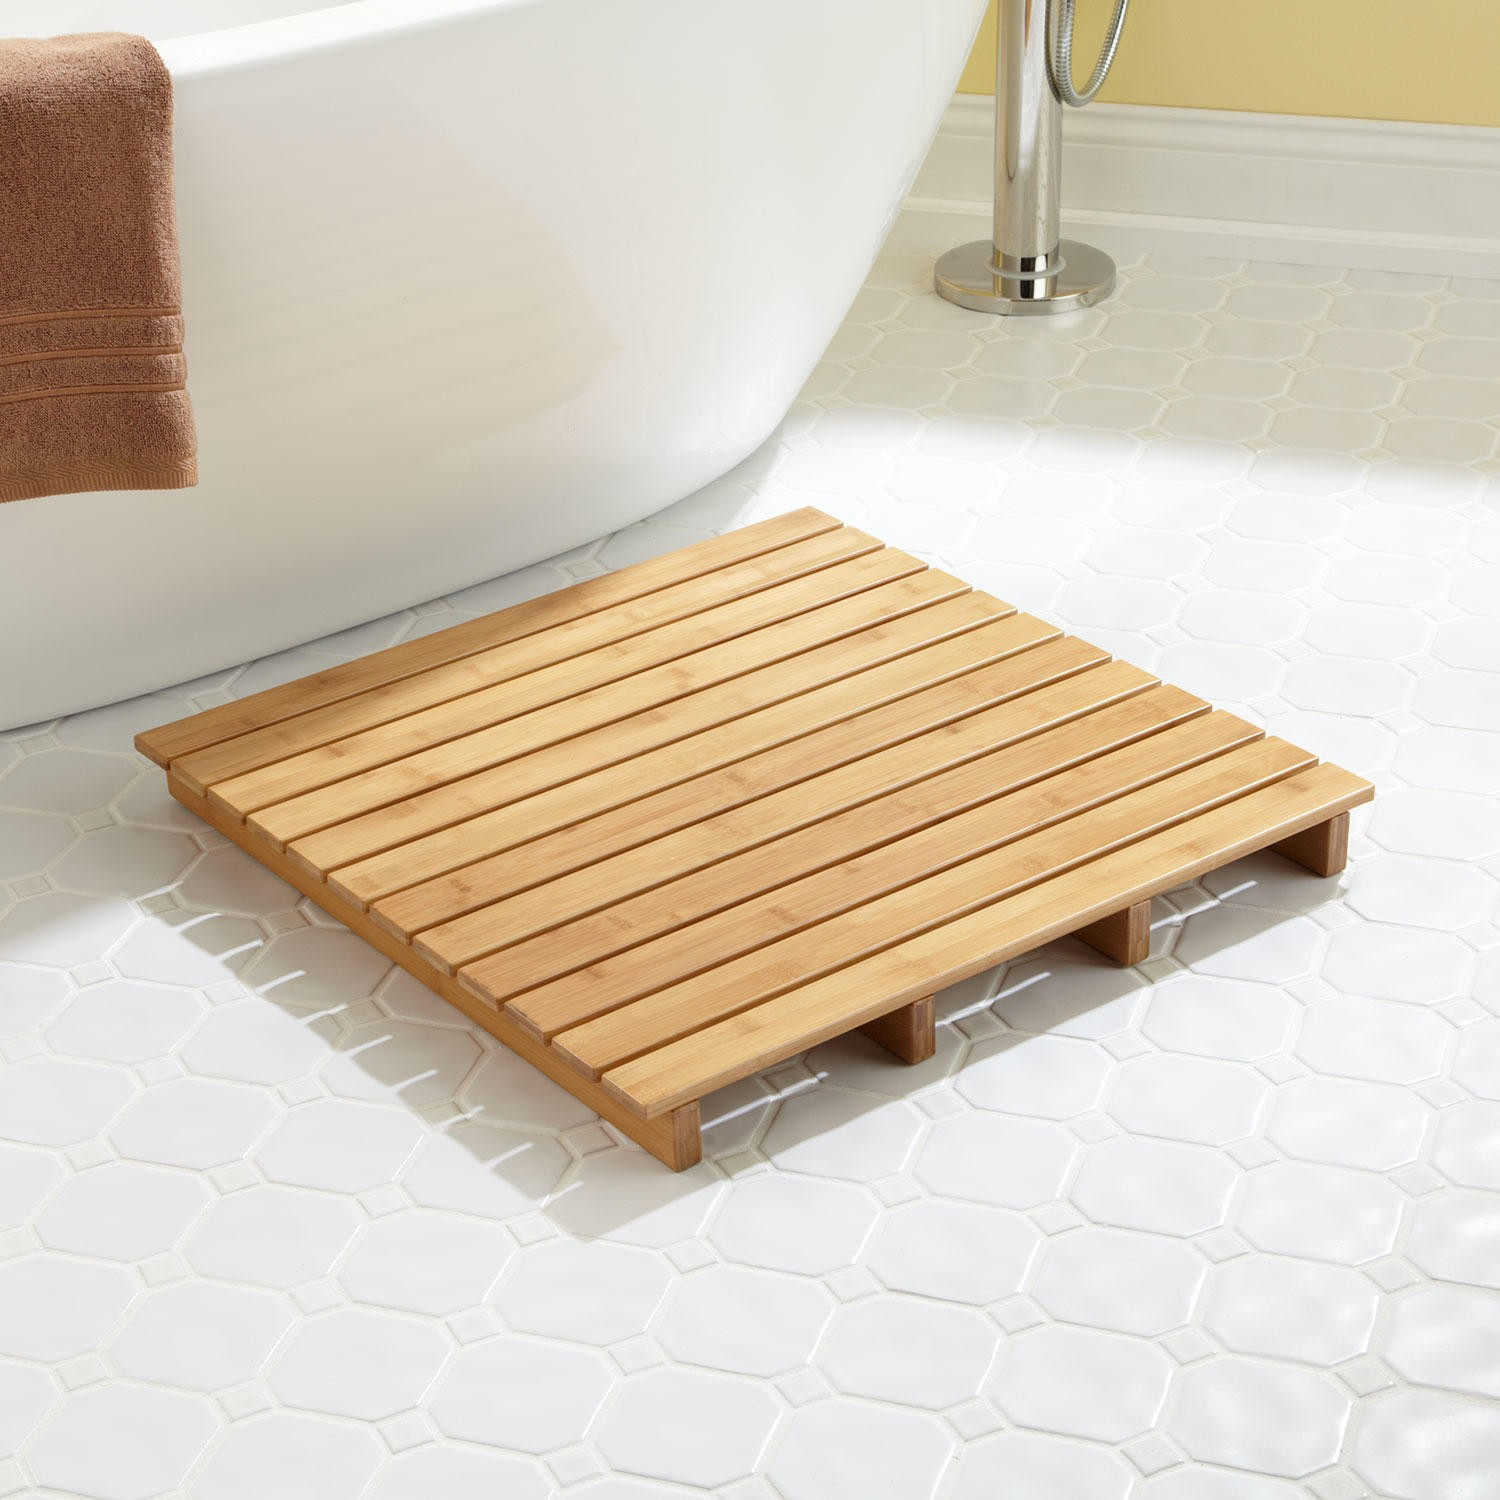 shower bath rugs. small teak bath mat7 bath mat ideas to make your